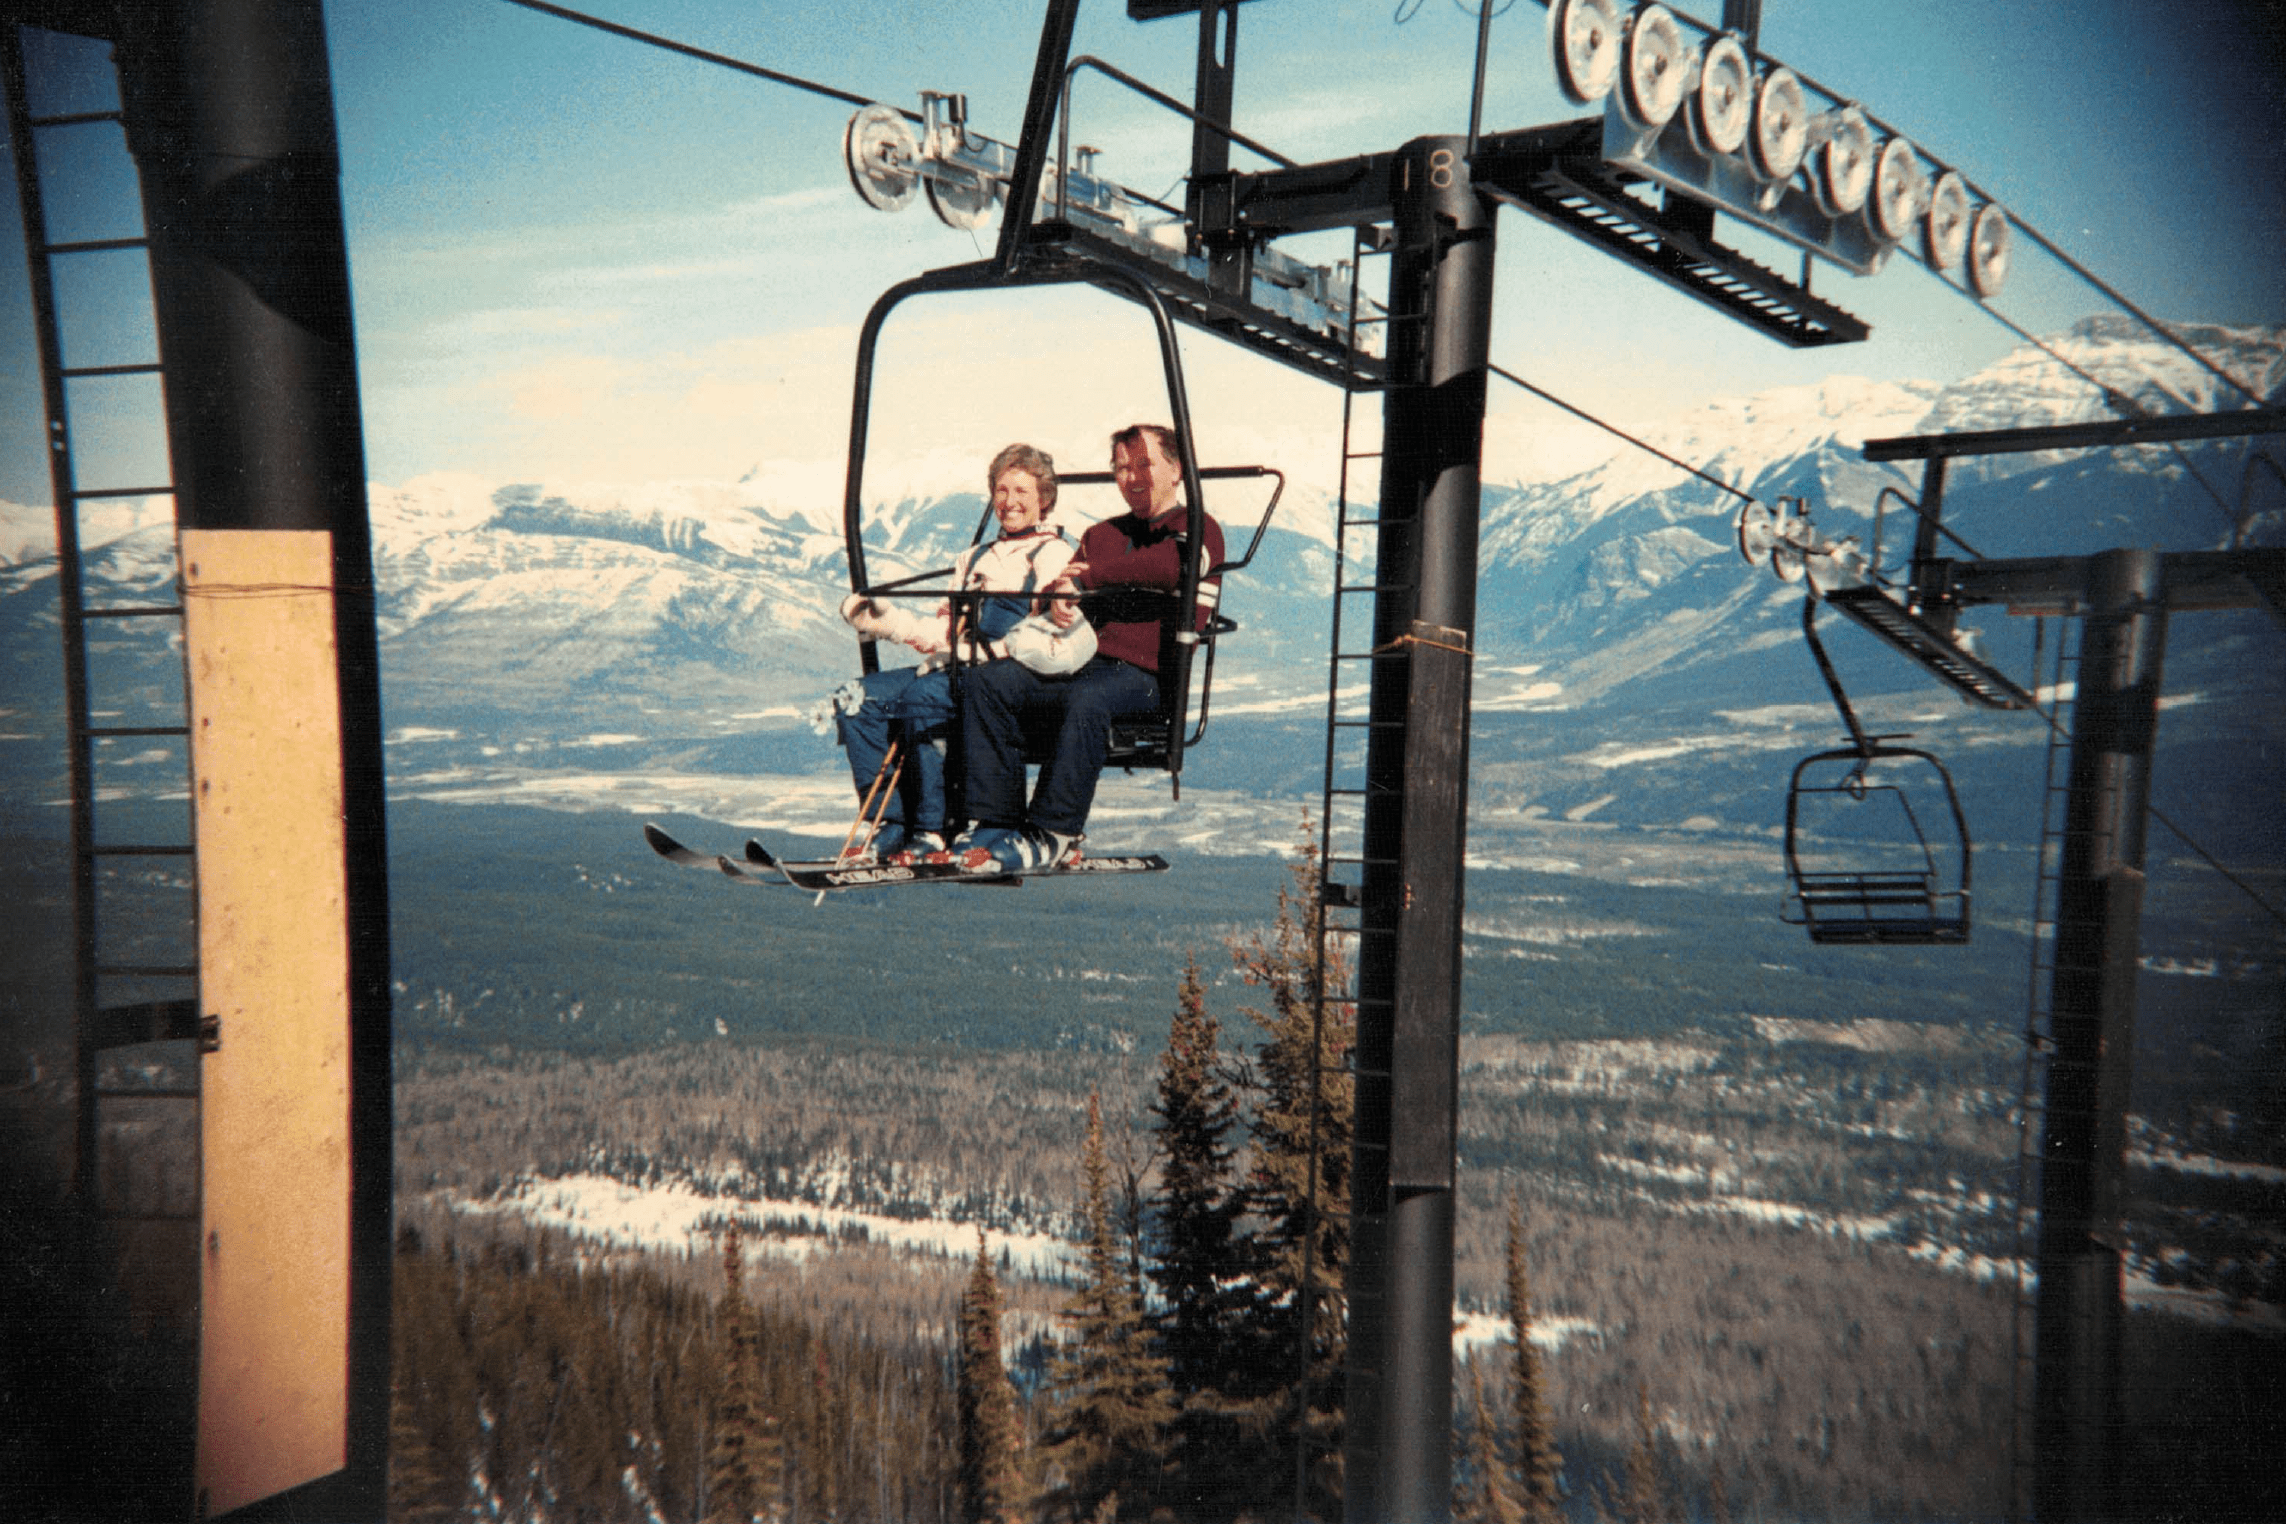 The original ski resort in Golden was serviced by one Pioneer chairlift and called Whitetooth Ski Area.